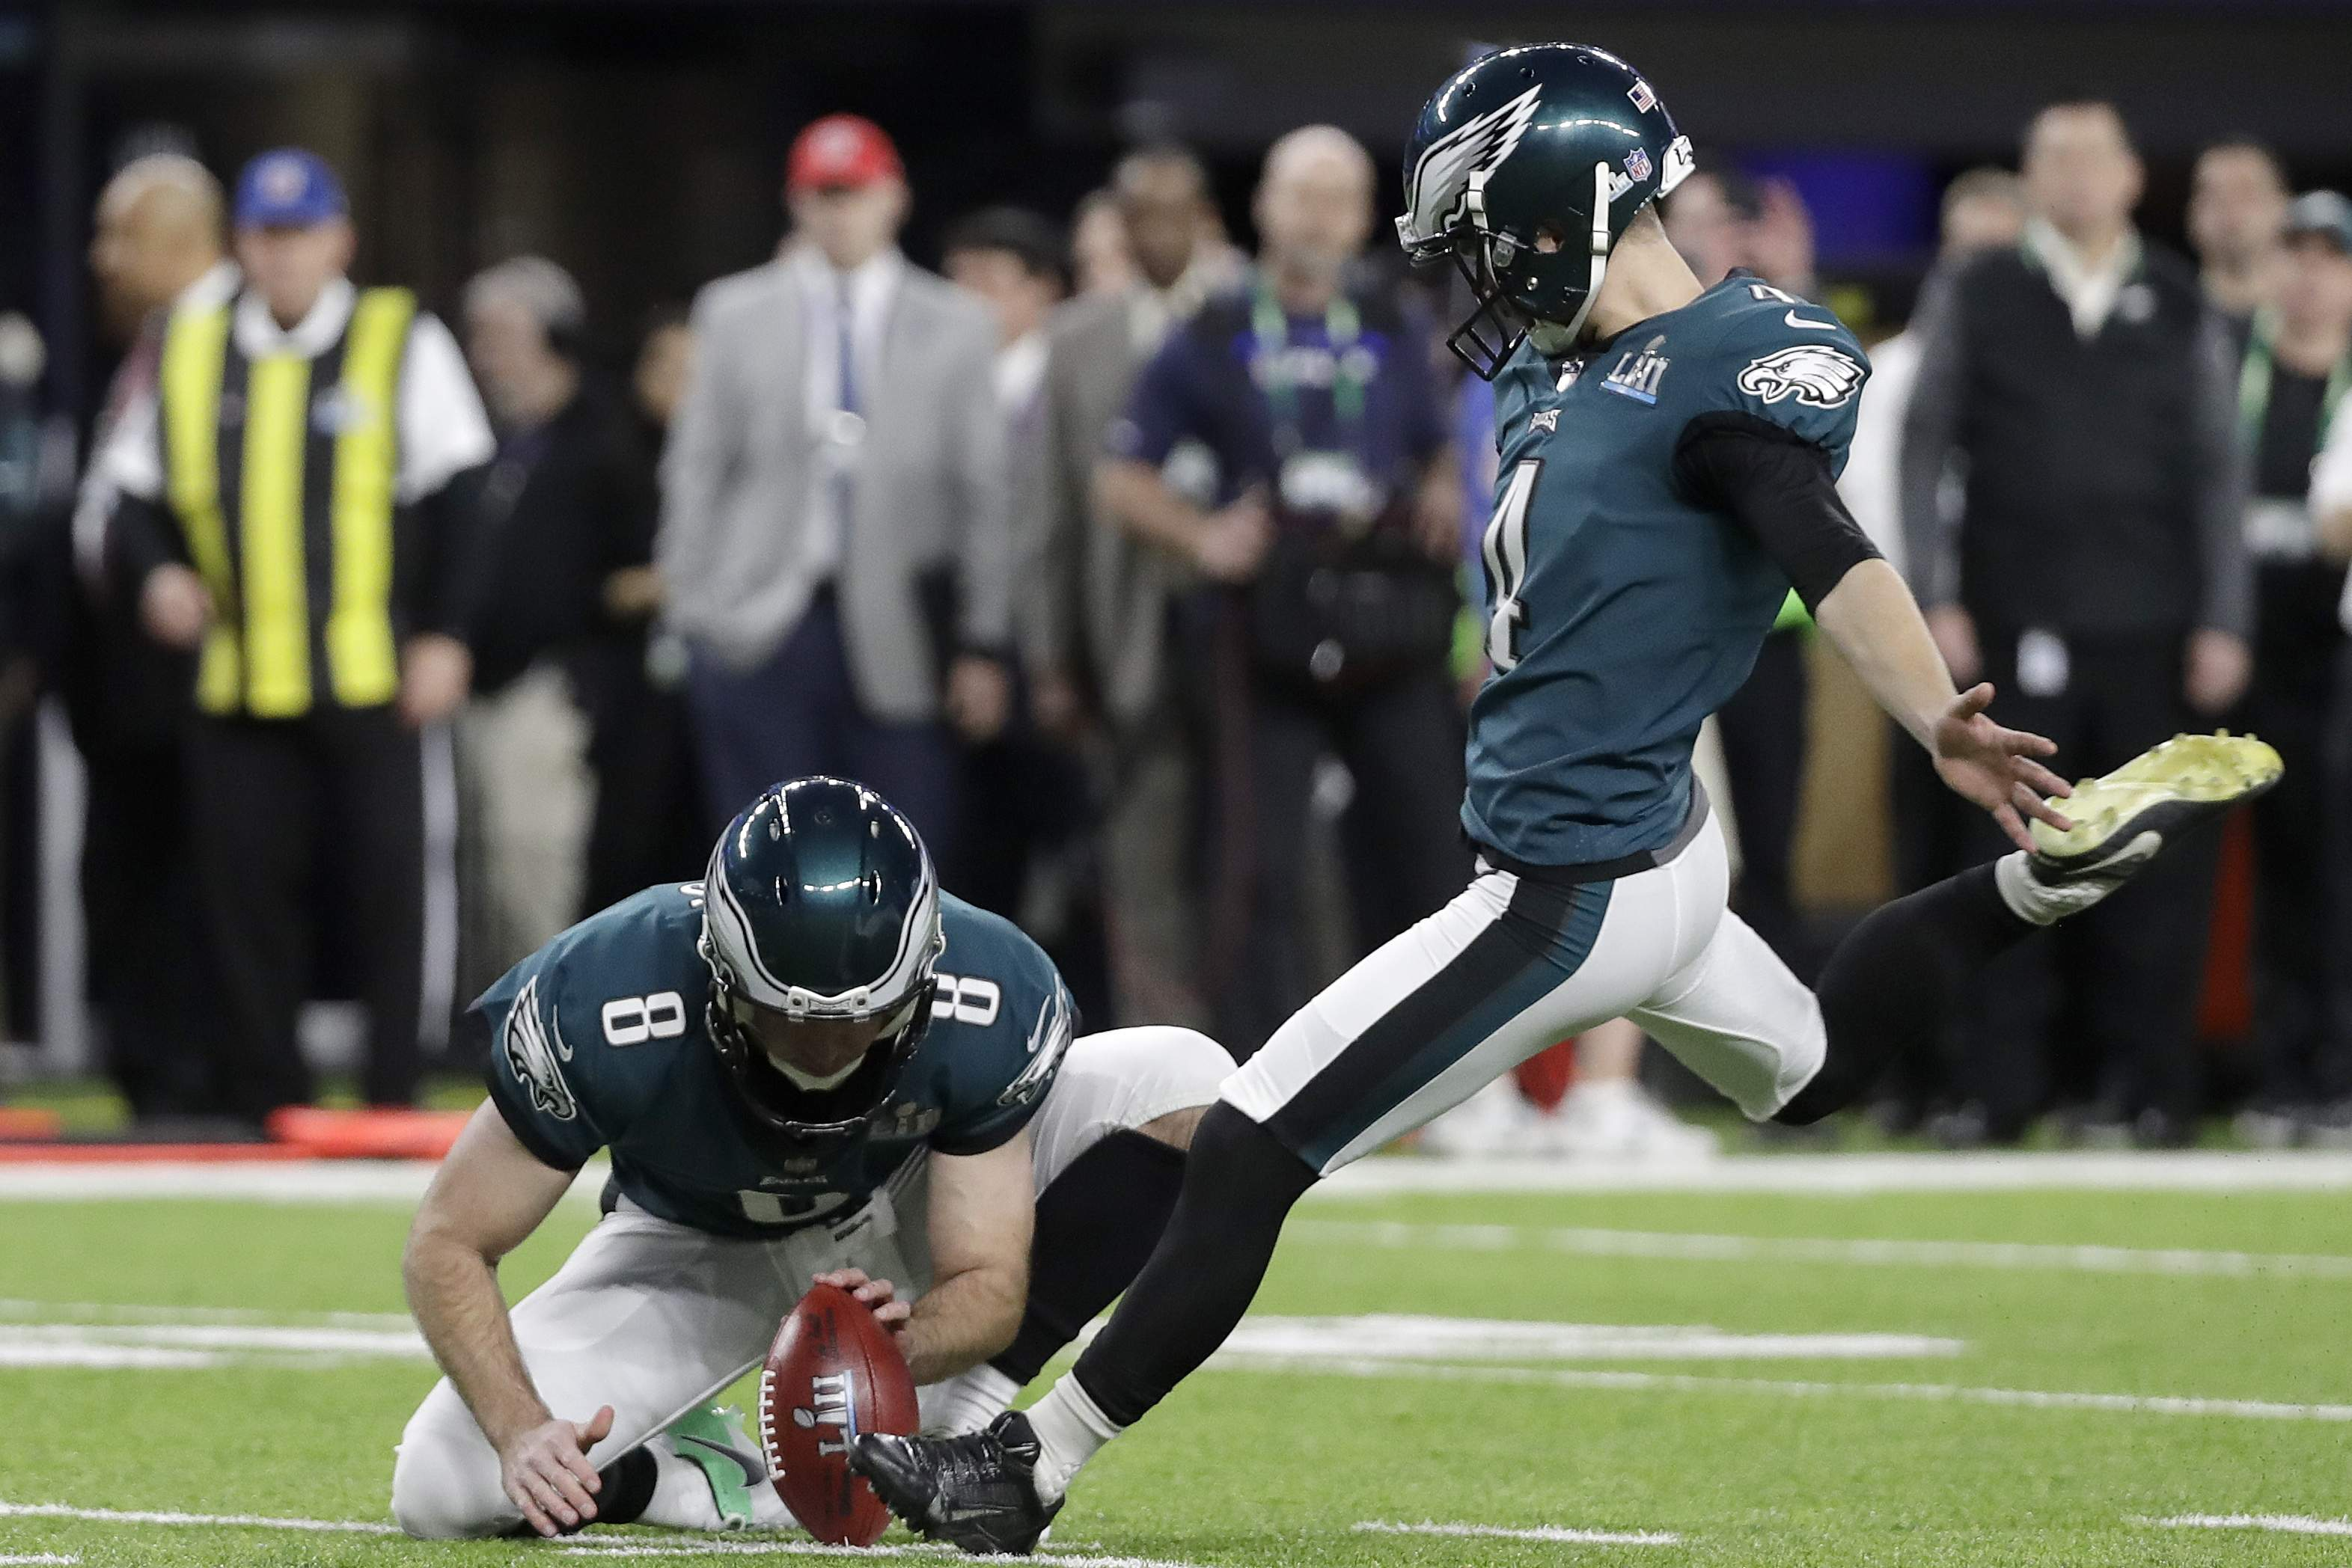 Philadelphia Eagles kicker Jake Elliott, right, kicks a field goal during the first half of the NFL Super Bowl 52 football game against the New England Patriots Sunday, Feb. 4, 2018, in Minneapolis. (AP Photo/Mark Humphrey)